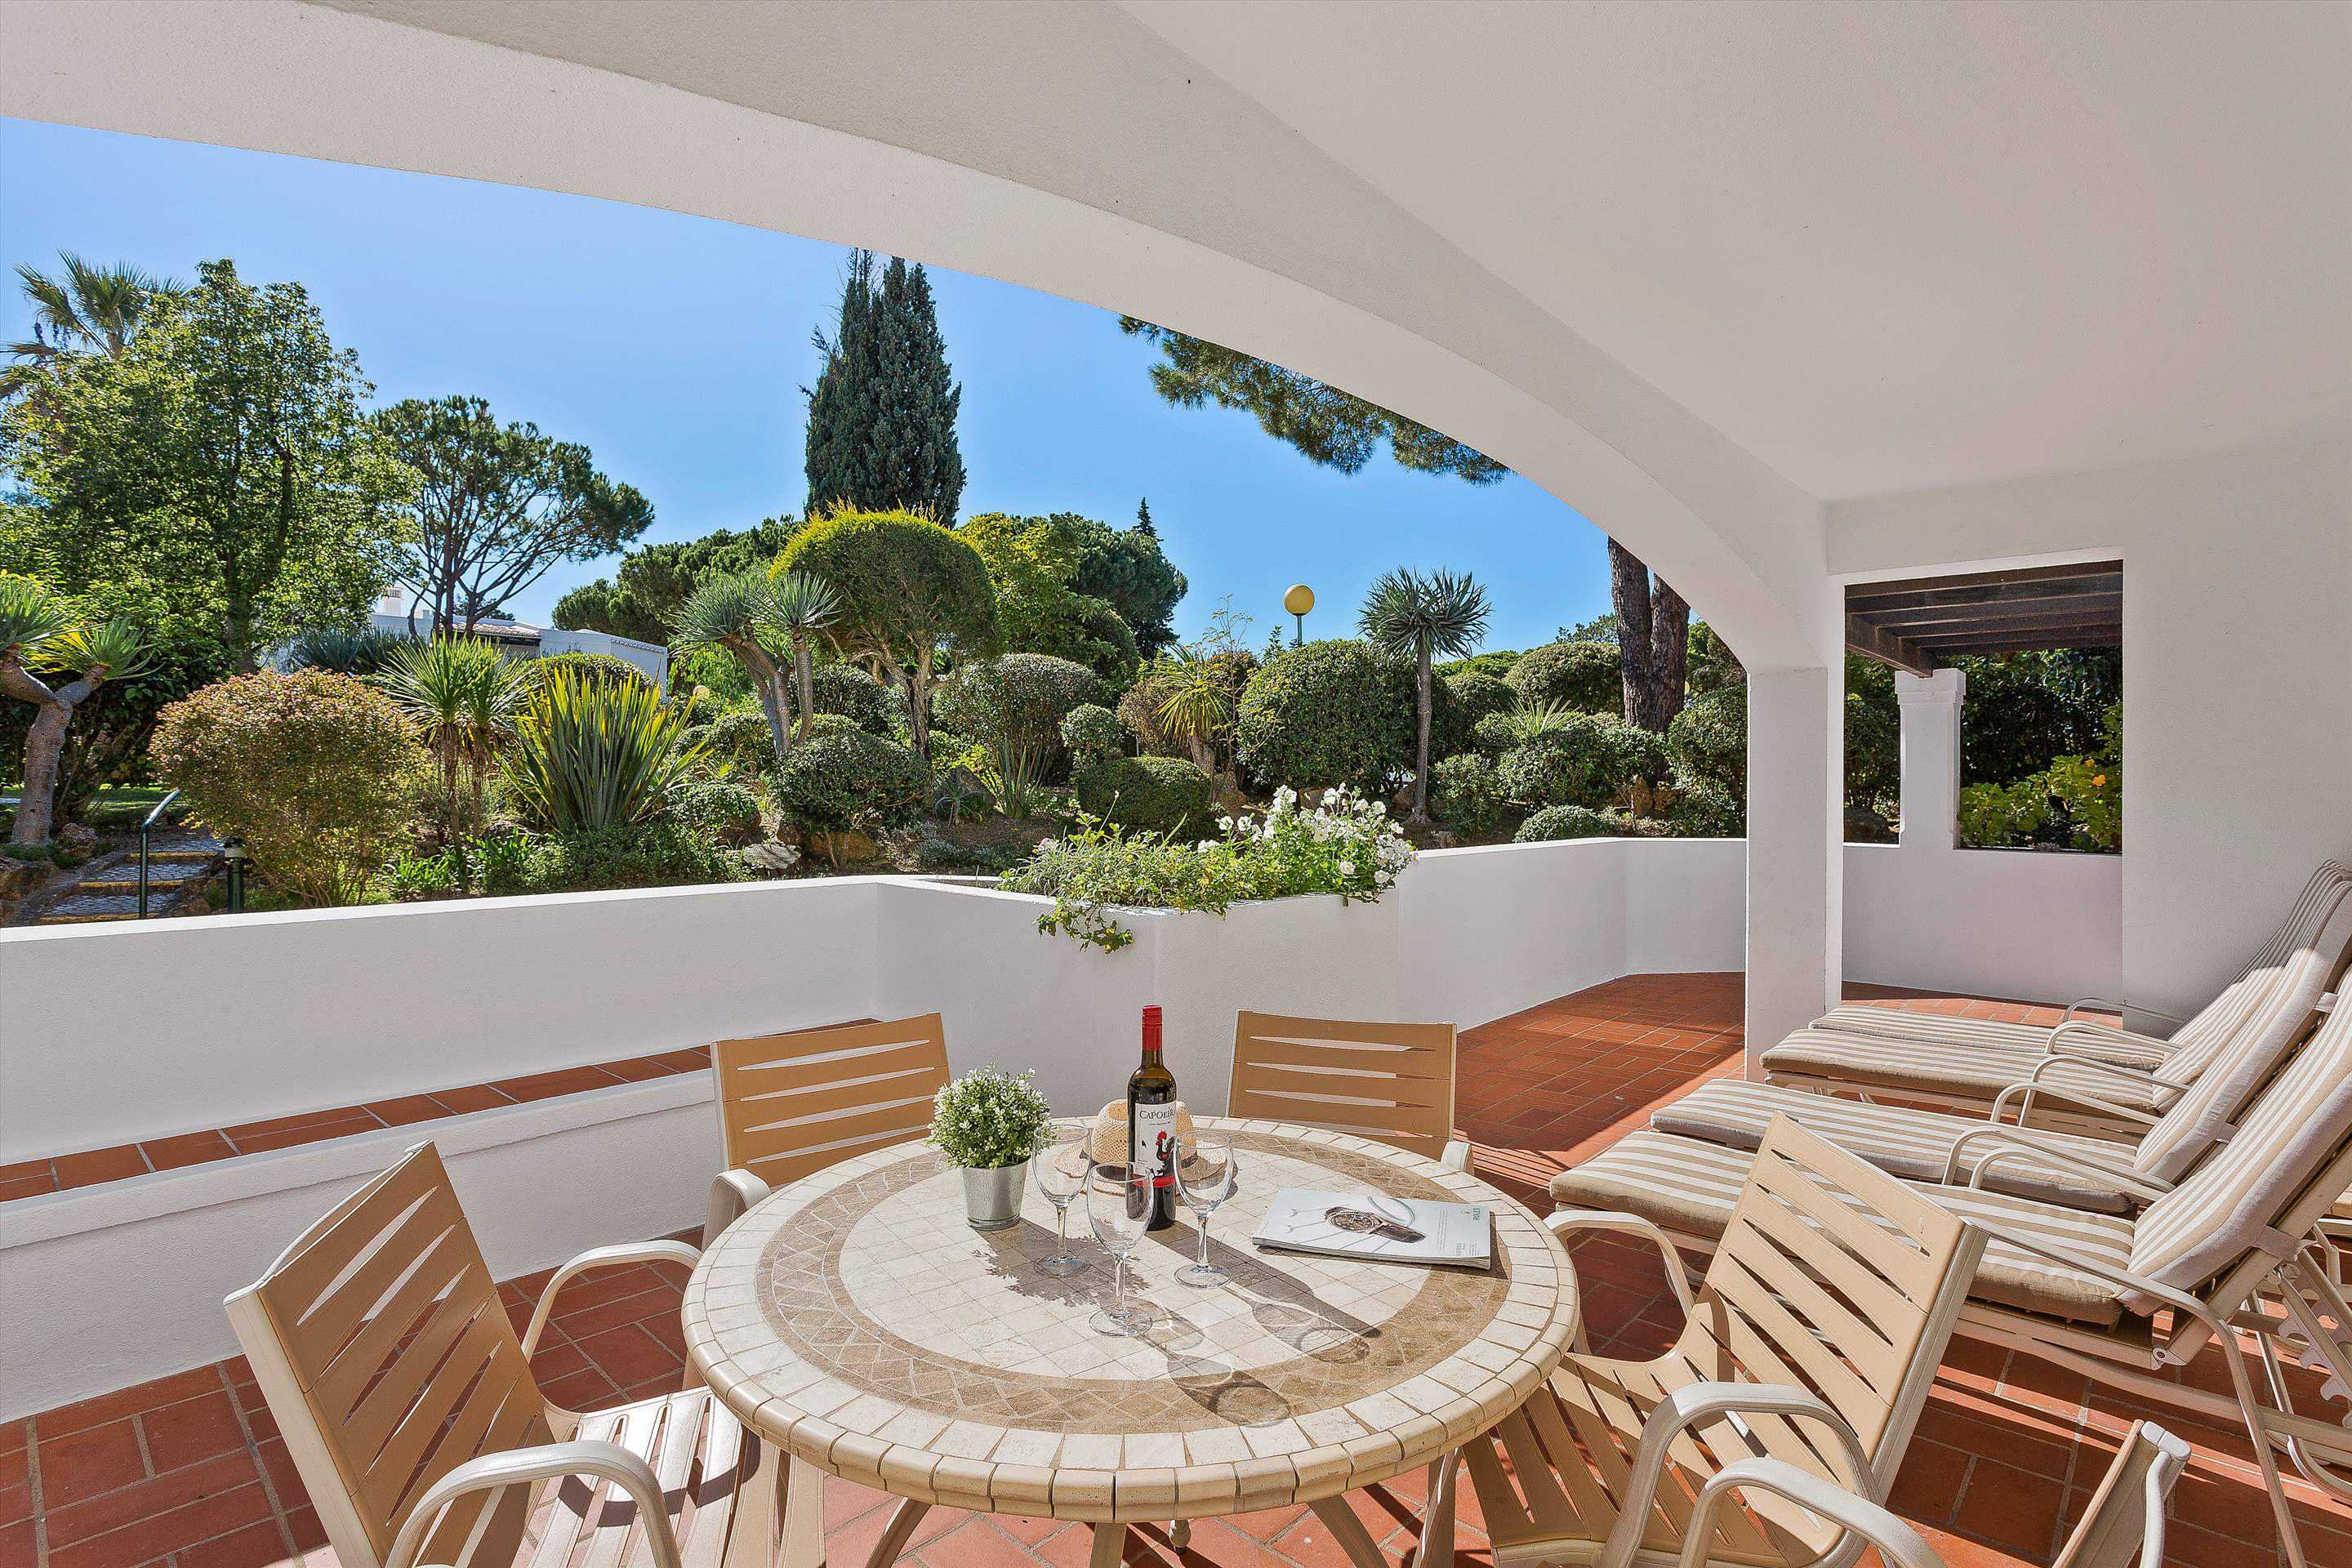 Four Seasons Country Club 2 Bed Townhouse, Superior - Thursday Arrival, 2 bedroom apartment in Four Seasons Country Club, Algarve Photo #2